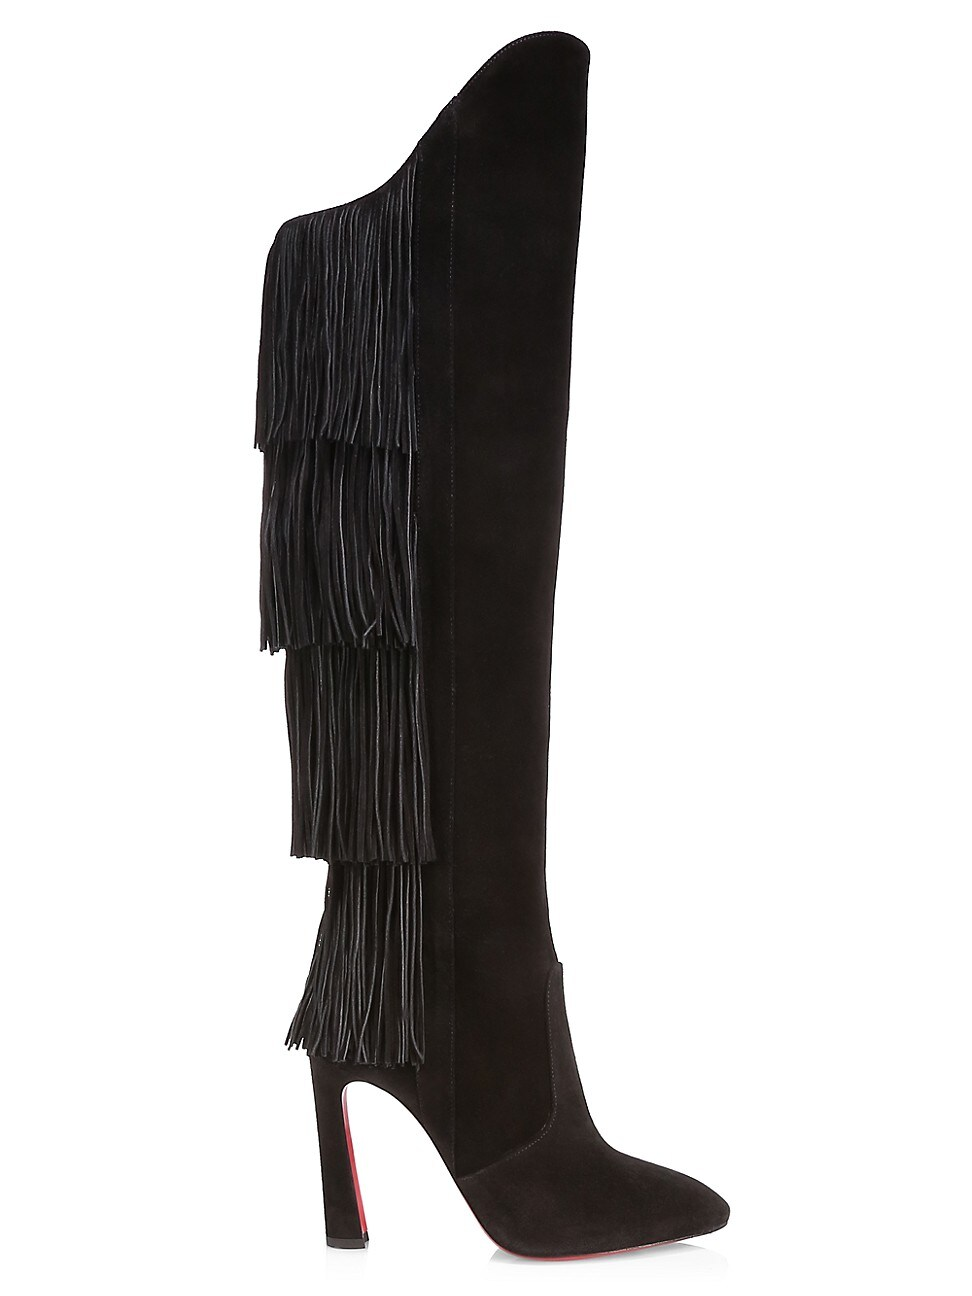 Christian Louboutin Boots WOMEN'S LIONNE TALL FRINGE SUEDE BOOTS